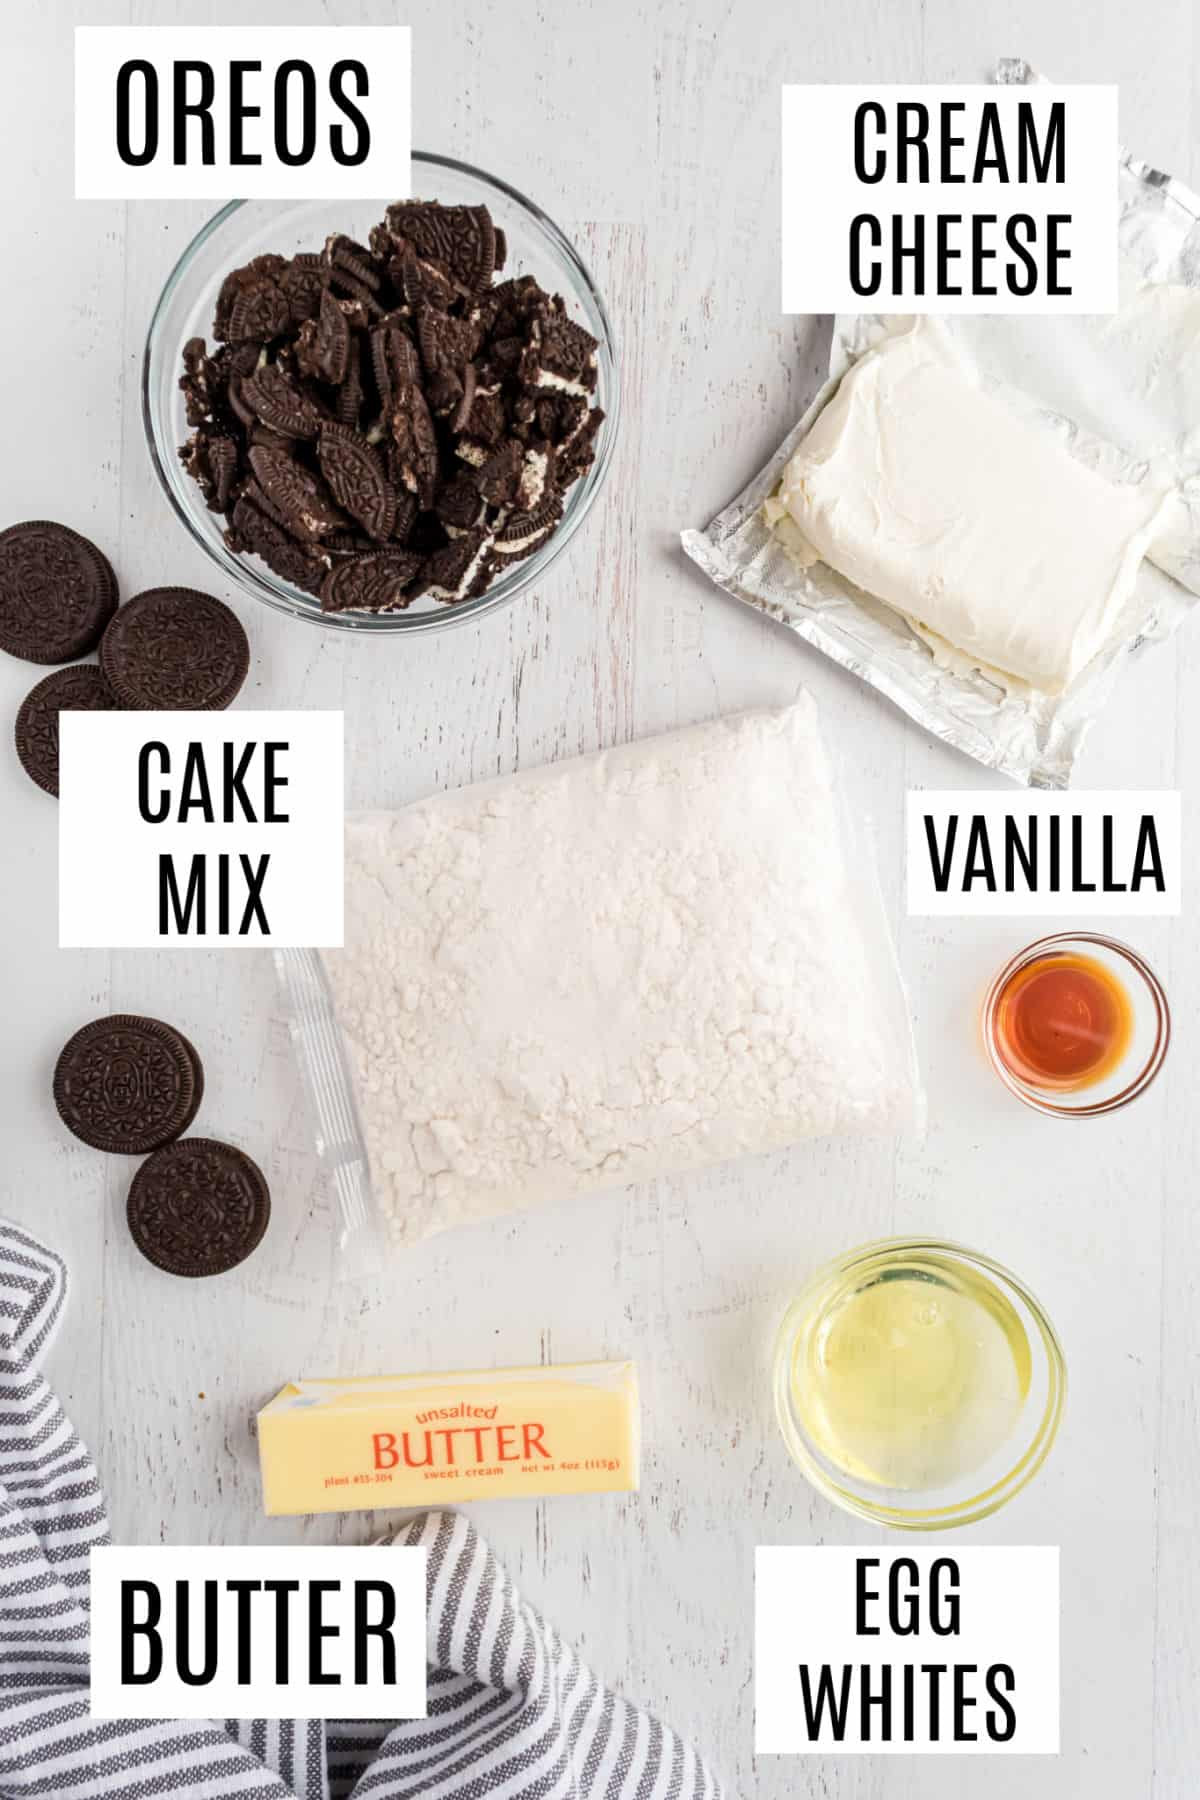 Ingredients needed to make oreo cream cheese cookies.